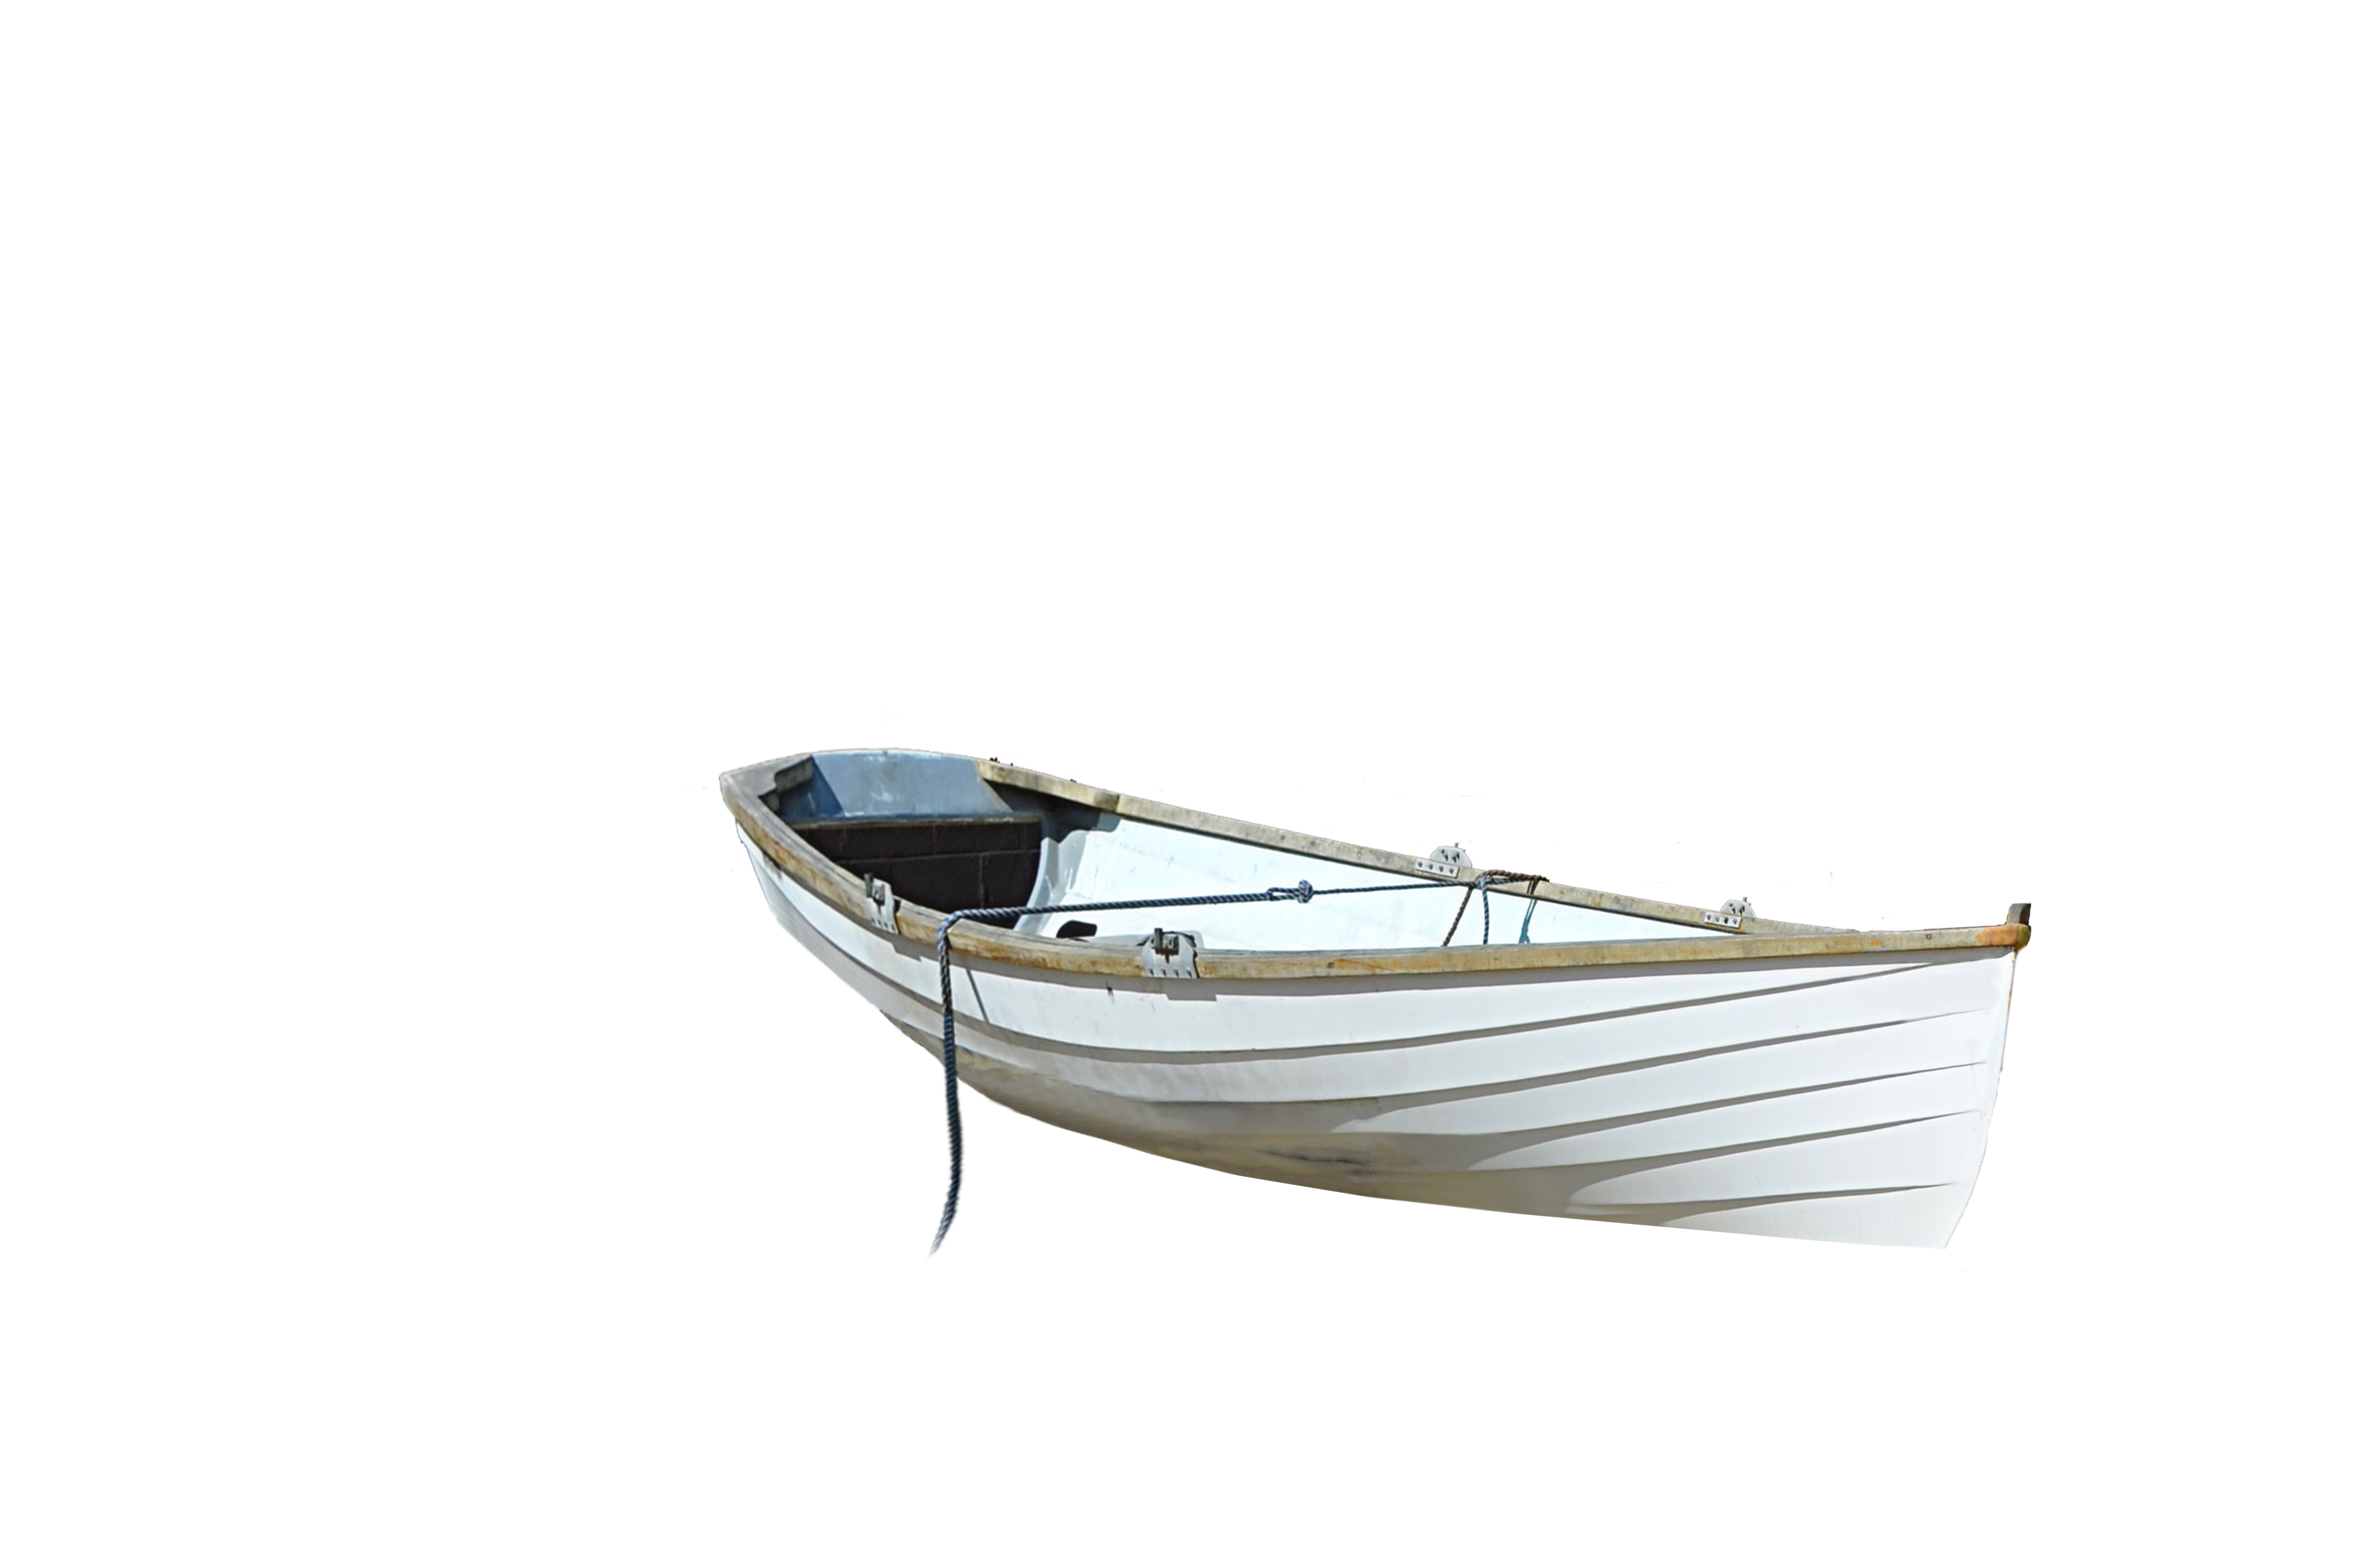 Boat New Boat With Rope Png